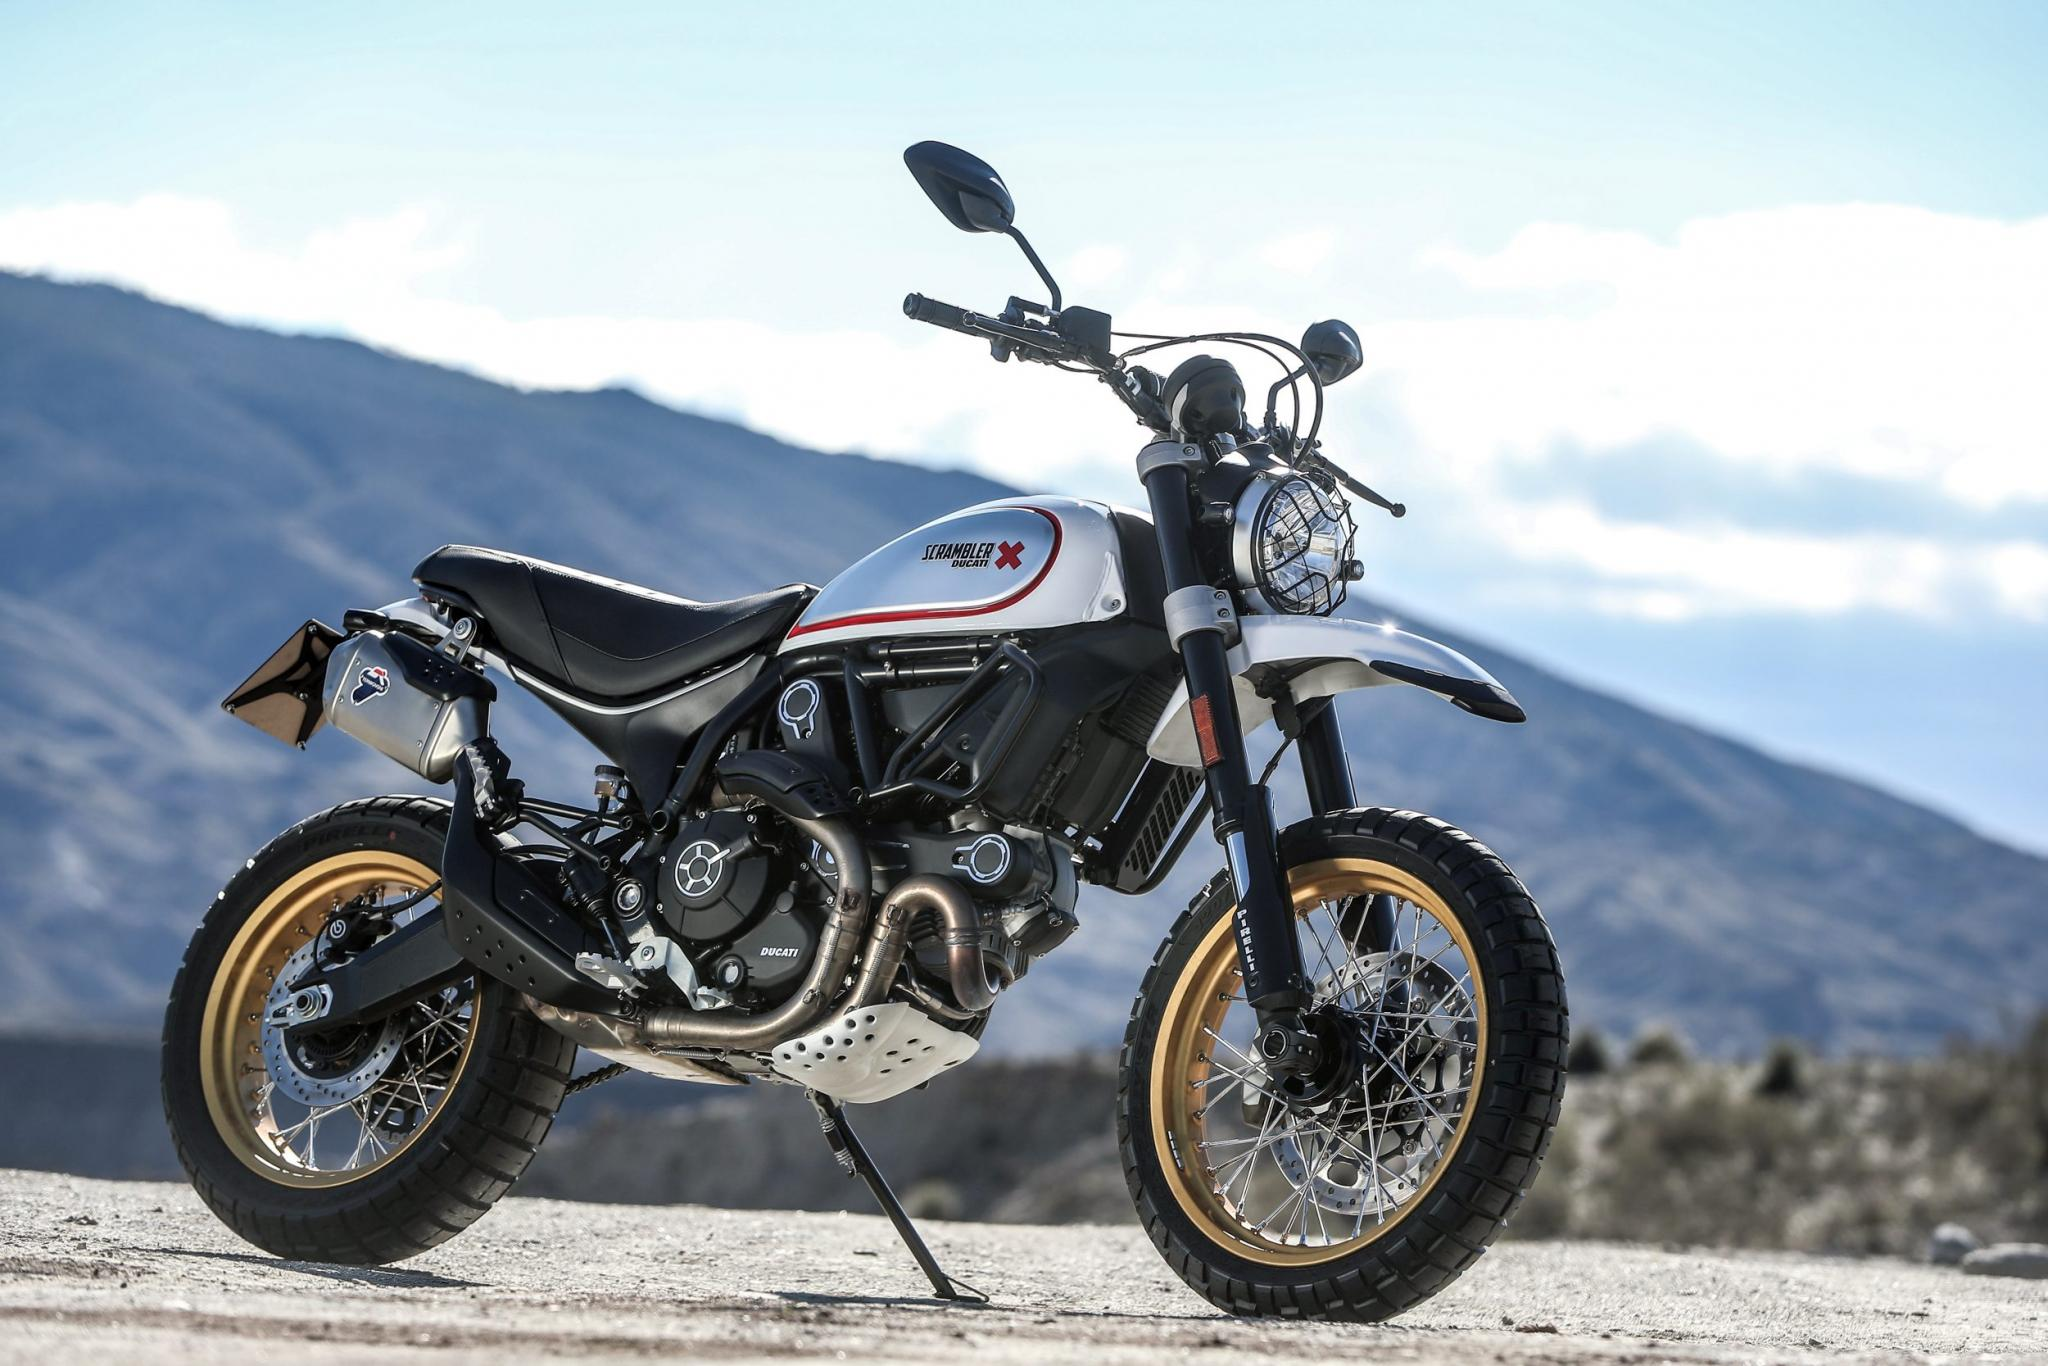 ducati scrambler desert sled test 2017 motorrad fotos motorrad bilder. Black Bedroom Furniture Sets. Home Design Ideas